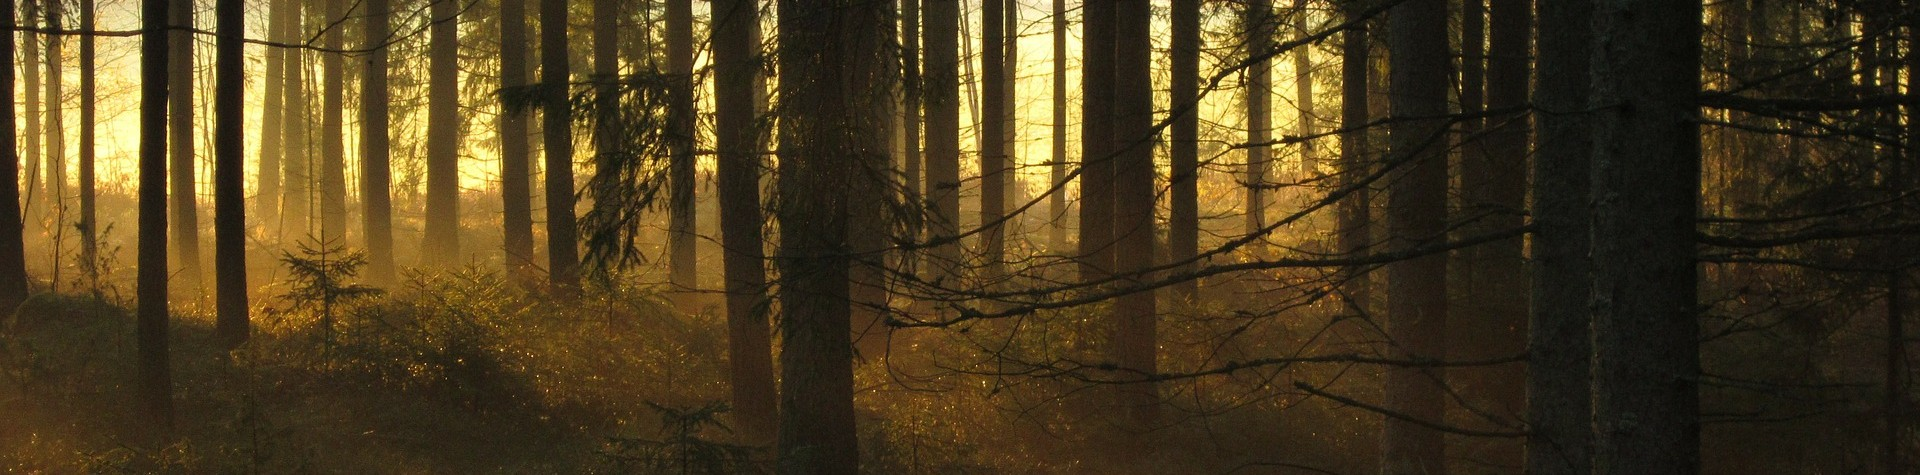 Image of sun coming into a spruce forest